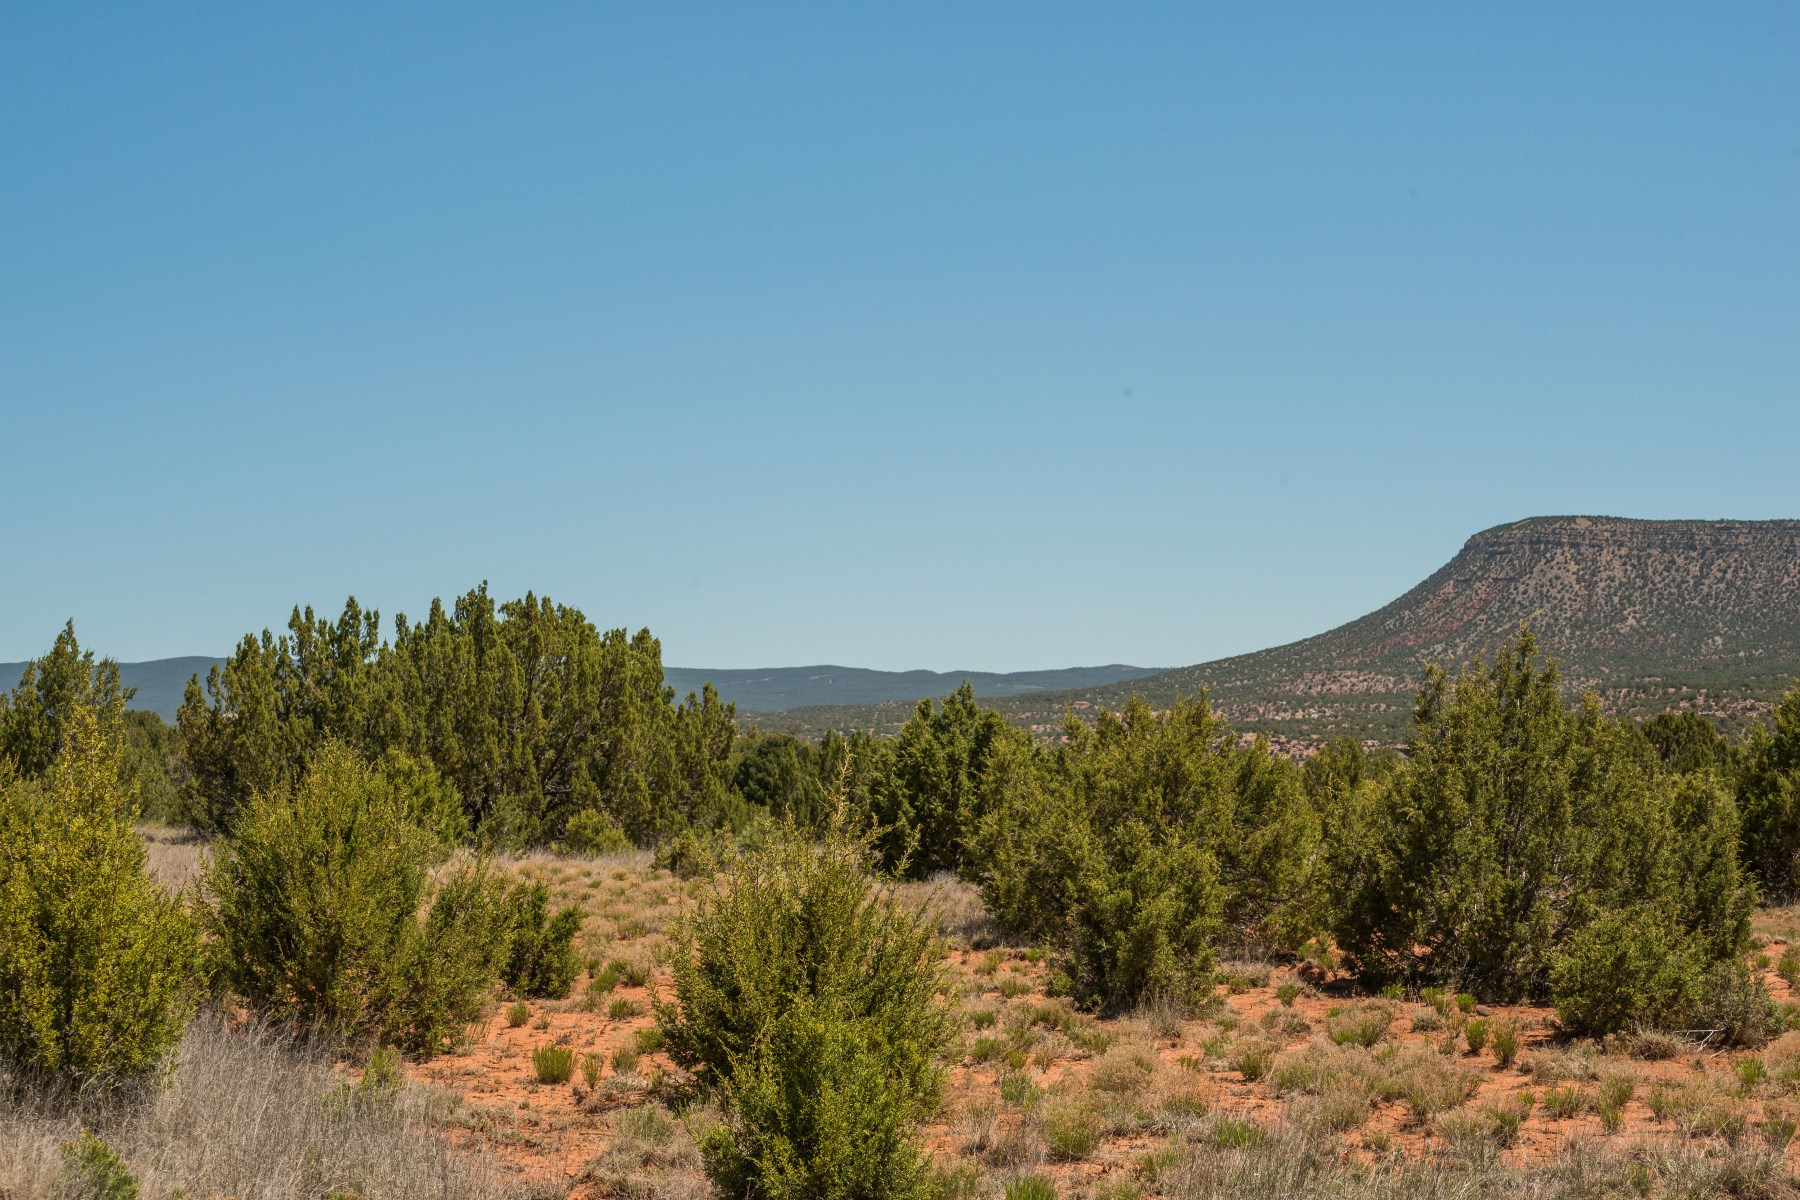 Land for Sale at Camiino De La Vineteria Camino De La Vineteria (52 Acres) El Pueblo, New Mexico 87560 United States